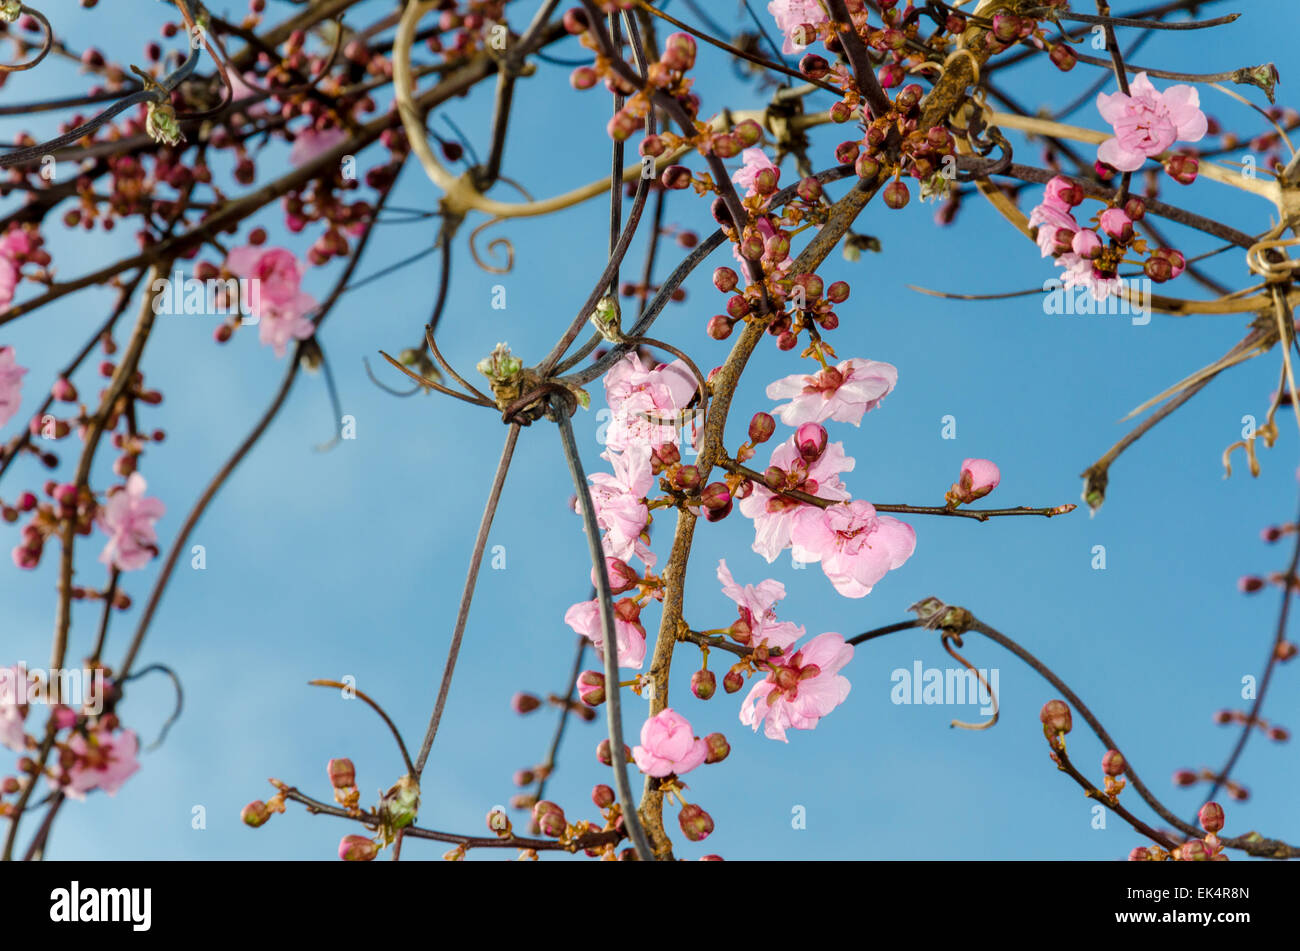 Blossom on an Ornamental Plum tree (also known as cherry plum, myrobalan plum, flowering plum, Prunus cerasifera) - Stock Image